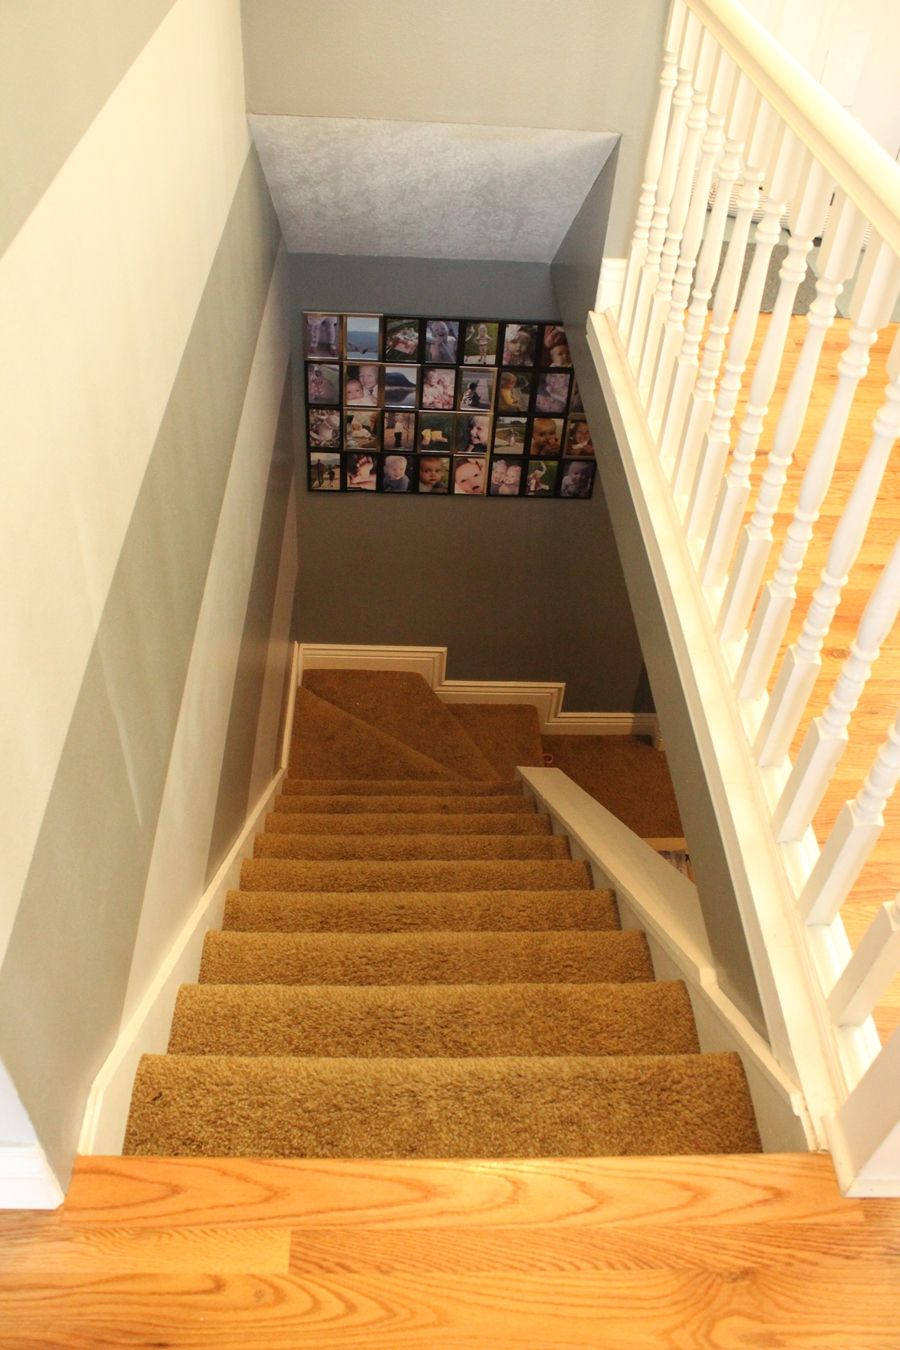 Captivating Update Your Staircase How To Remove And Install Carpet On The Stairs